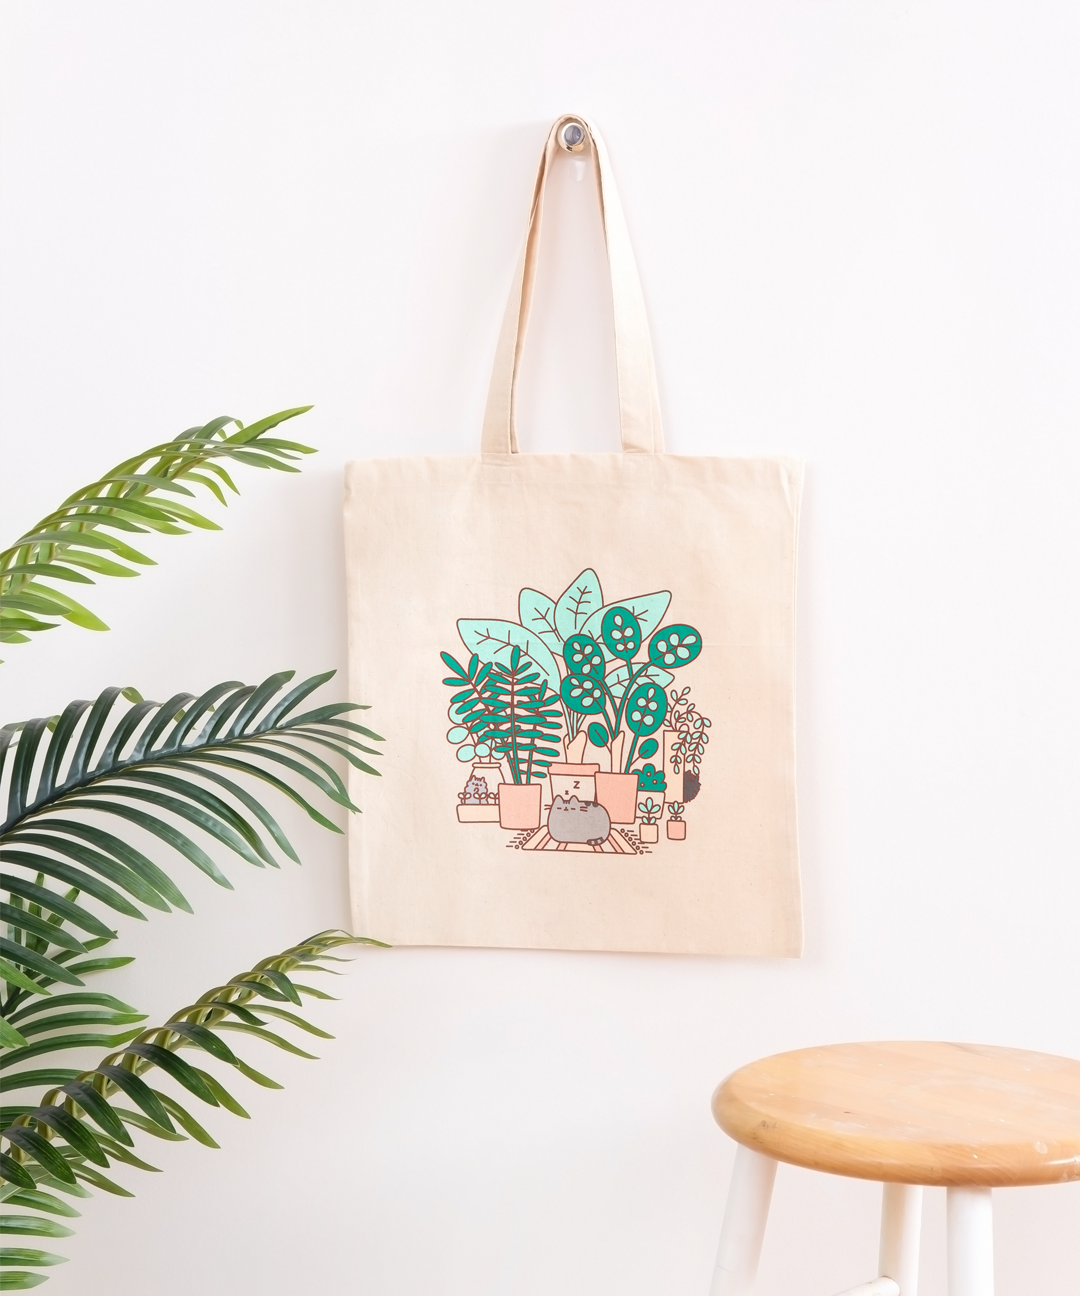 Pusheen & Plants Tote Bag